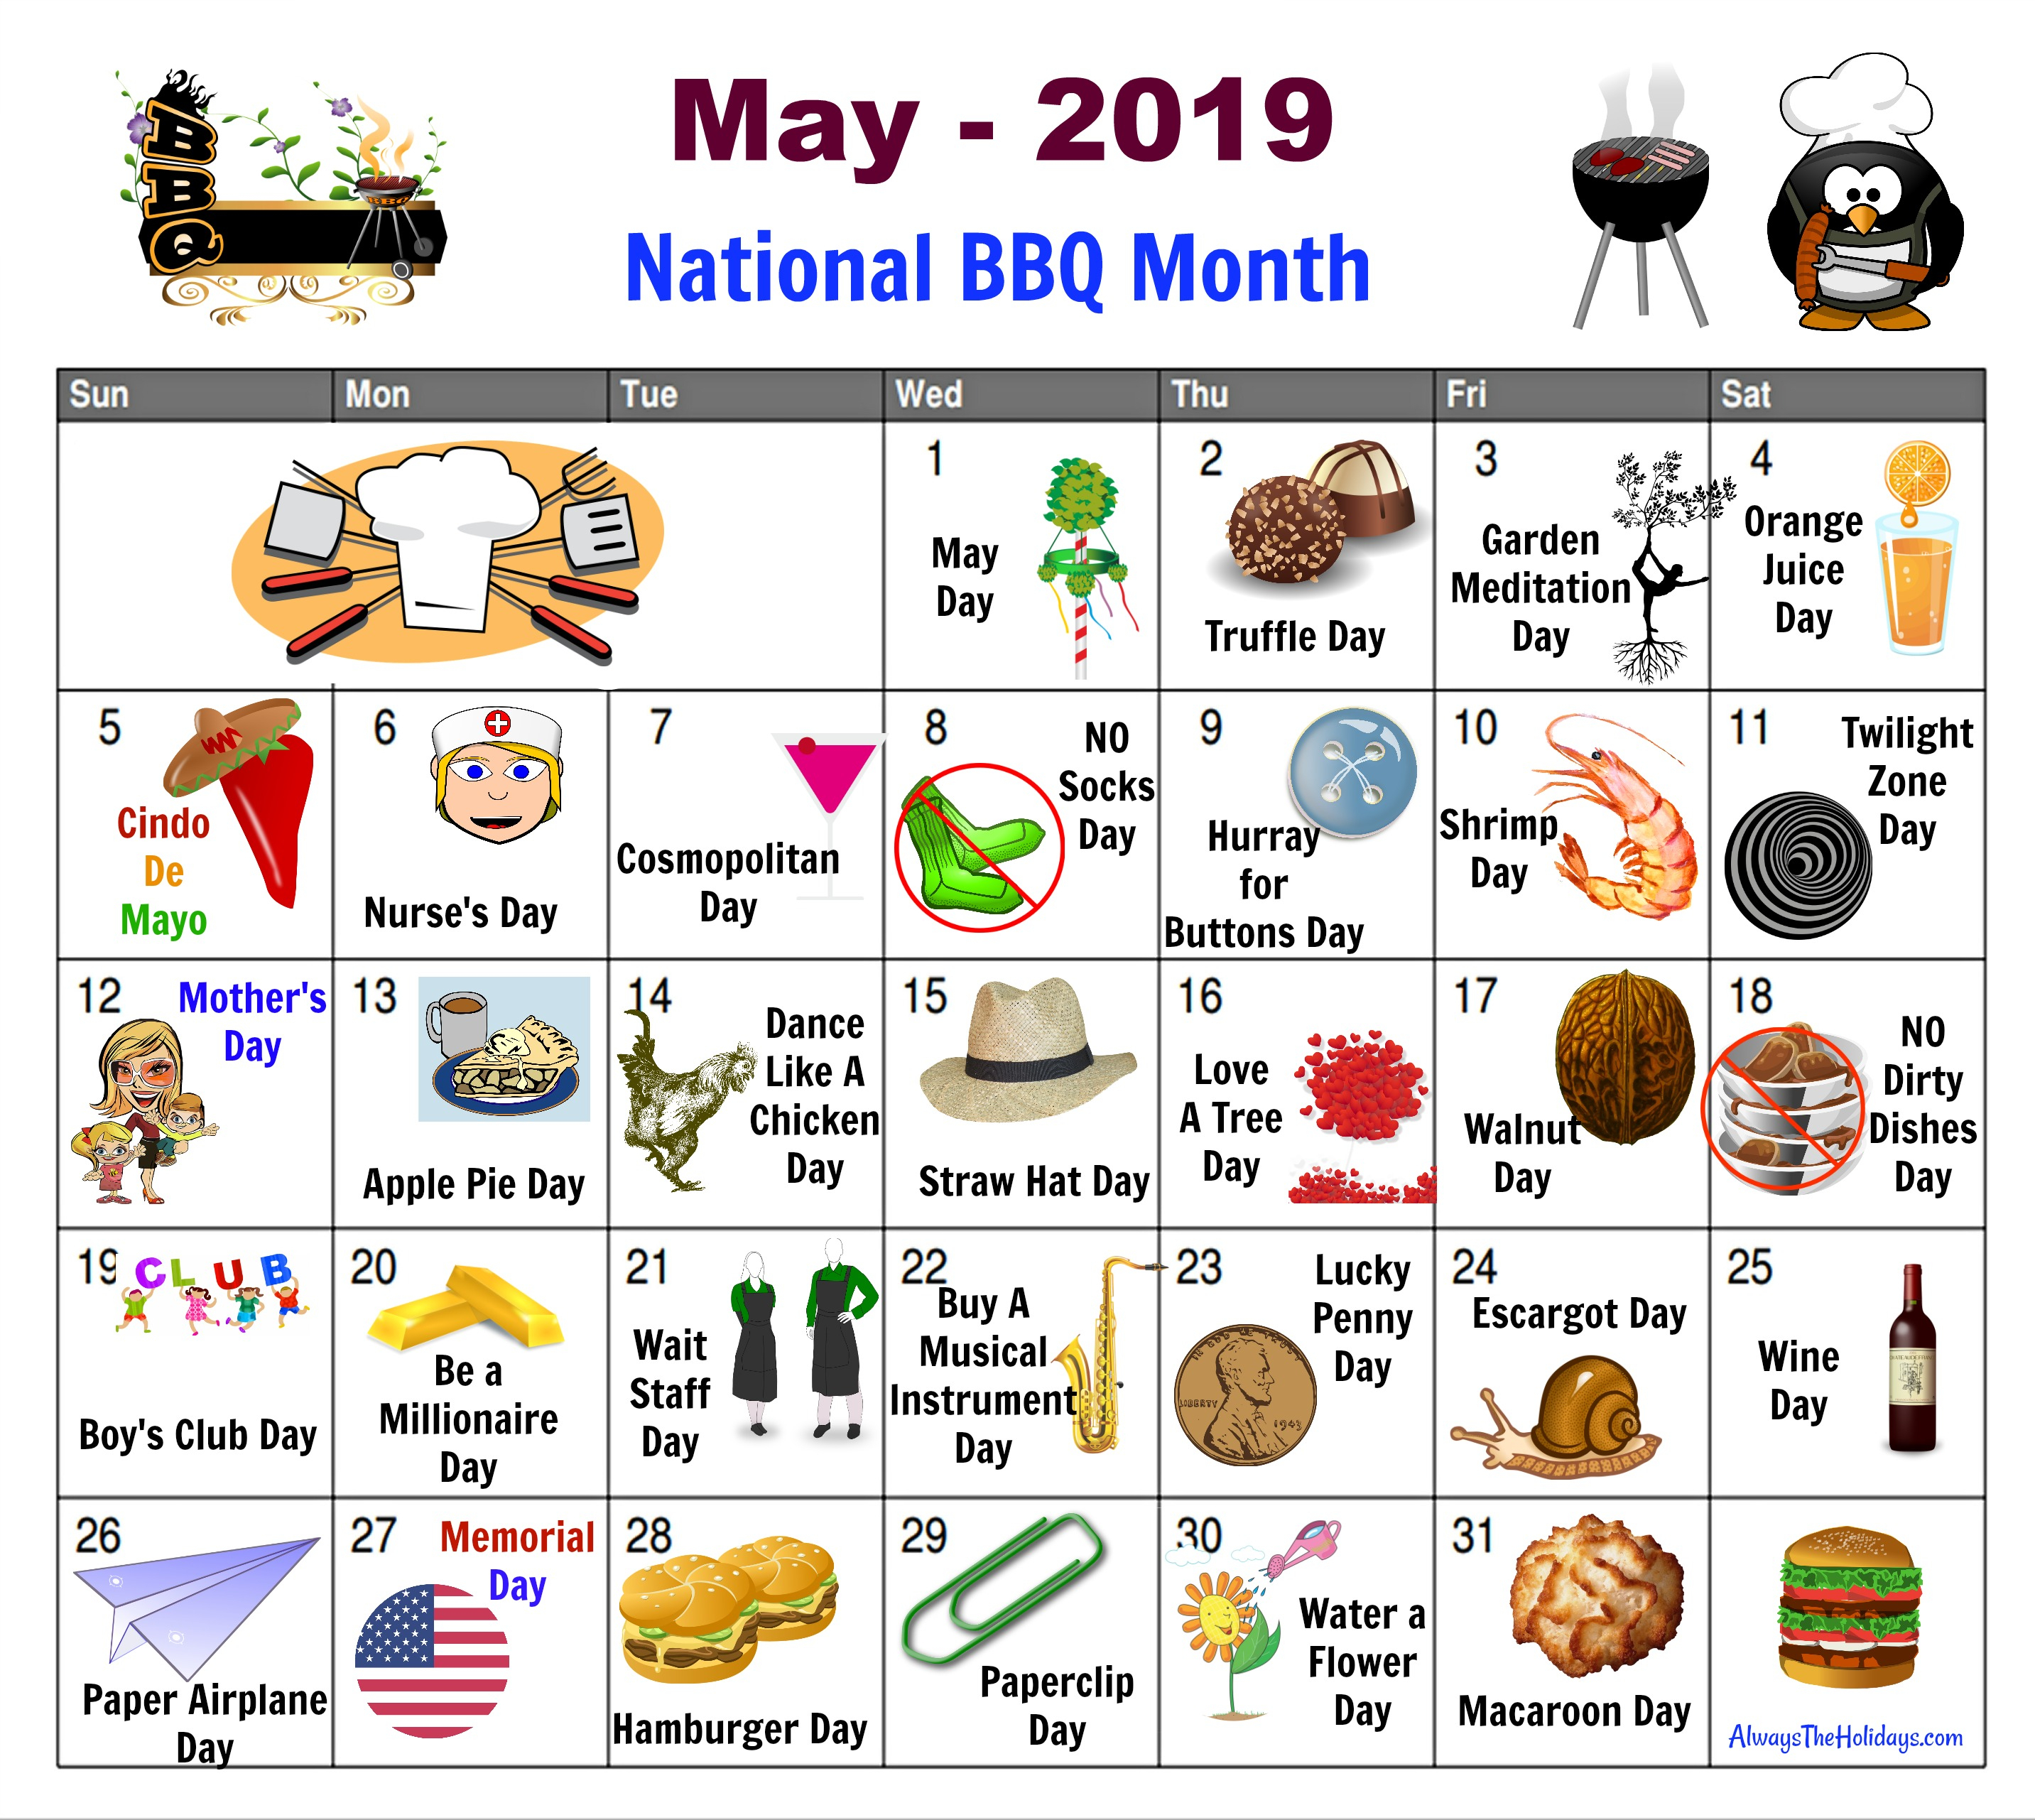 May National Day Calendar - Free Printable - Always The Holidays pertaining to National Food Day With Events Calender 2020 Free To Print Up